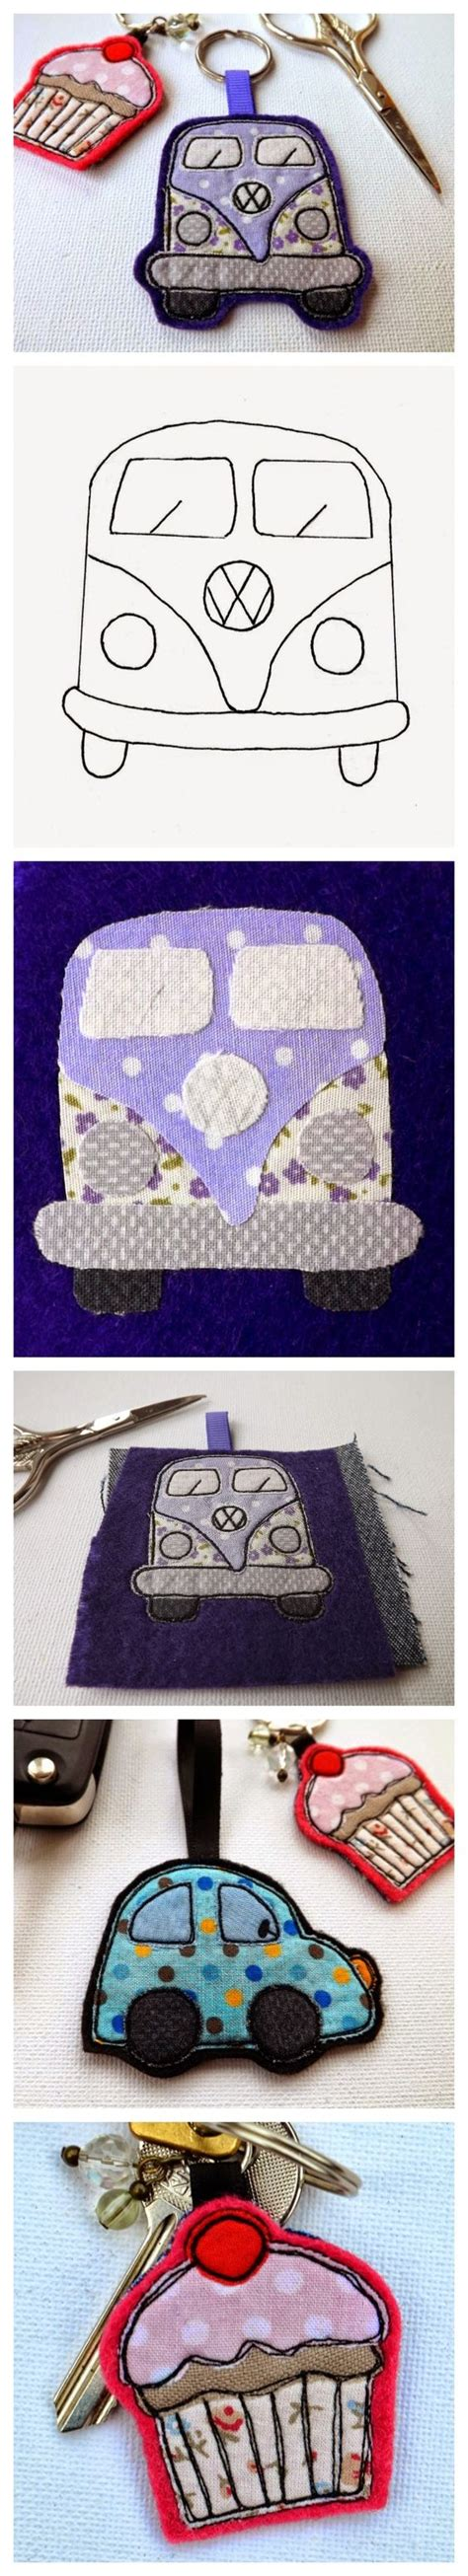 felt vw pattern felt vw cer van keyring with pattern and tutorial also